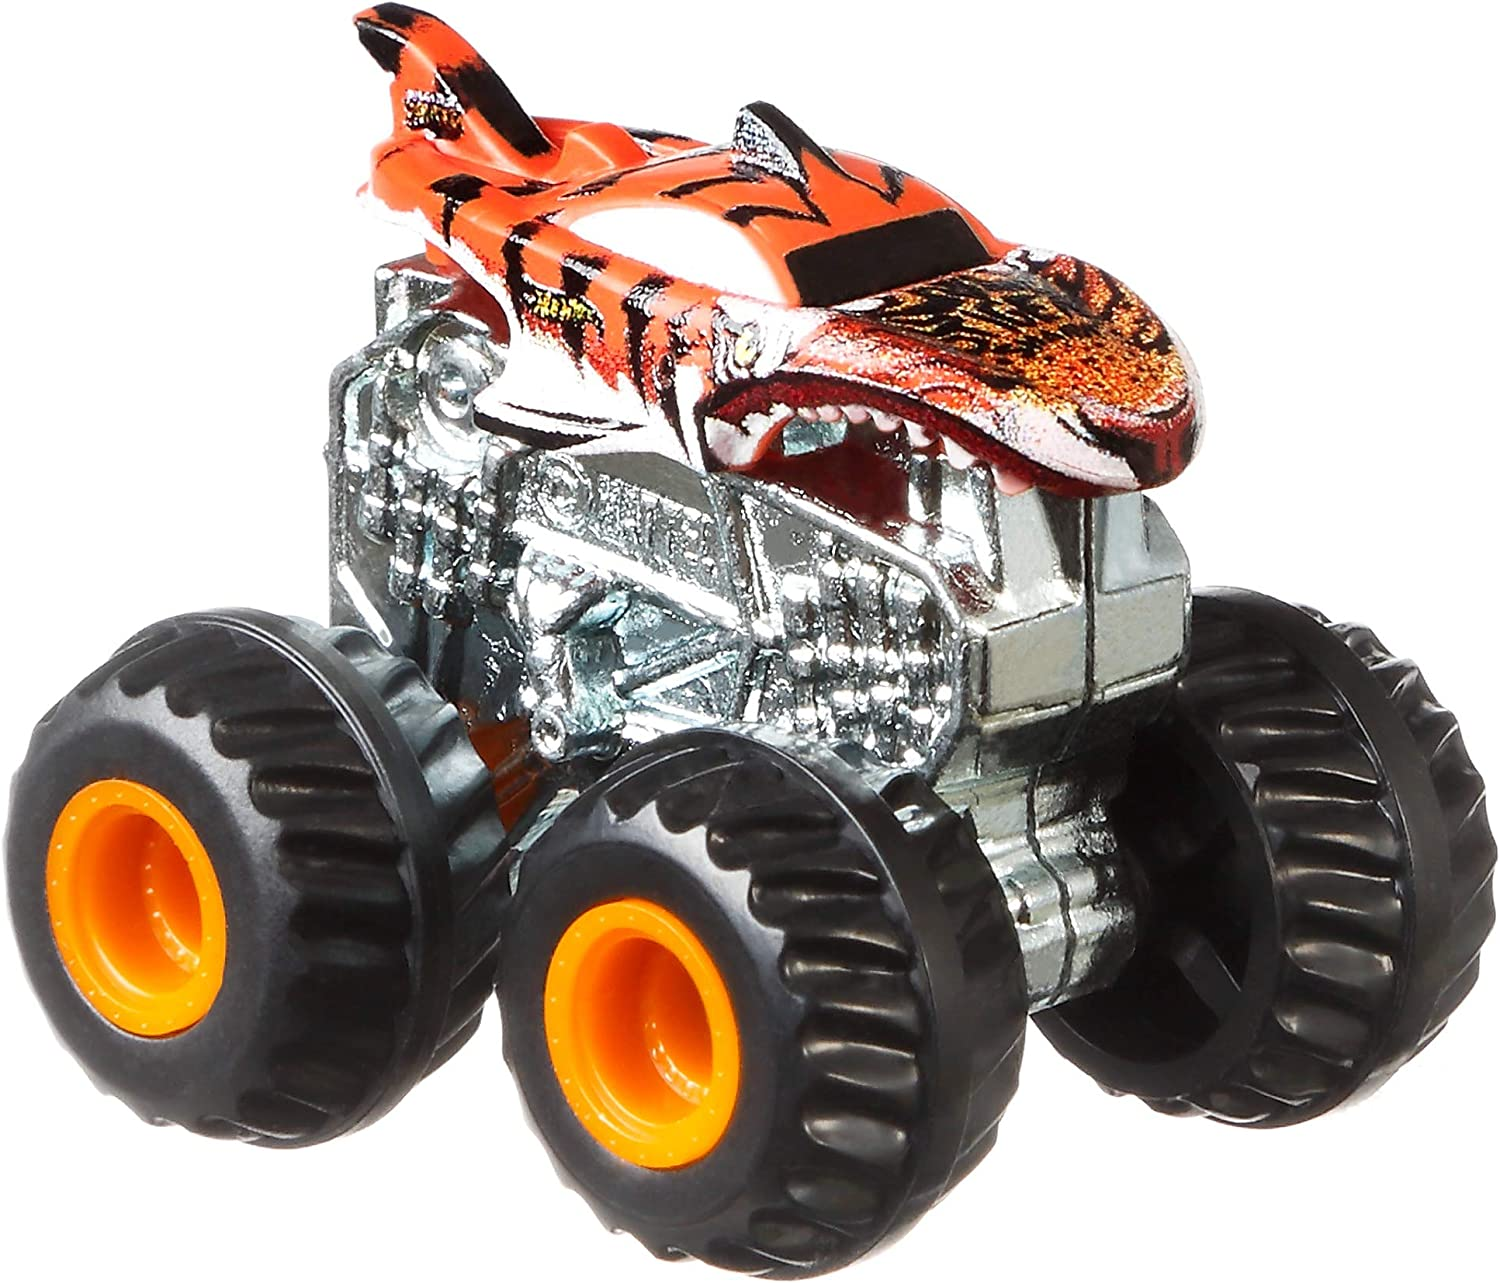 Hot Wheels GBR24 Monster Mystery Trucks - Caja ciega, varios ...